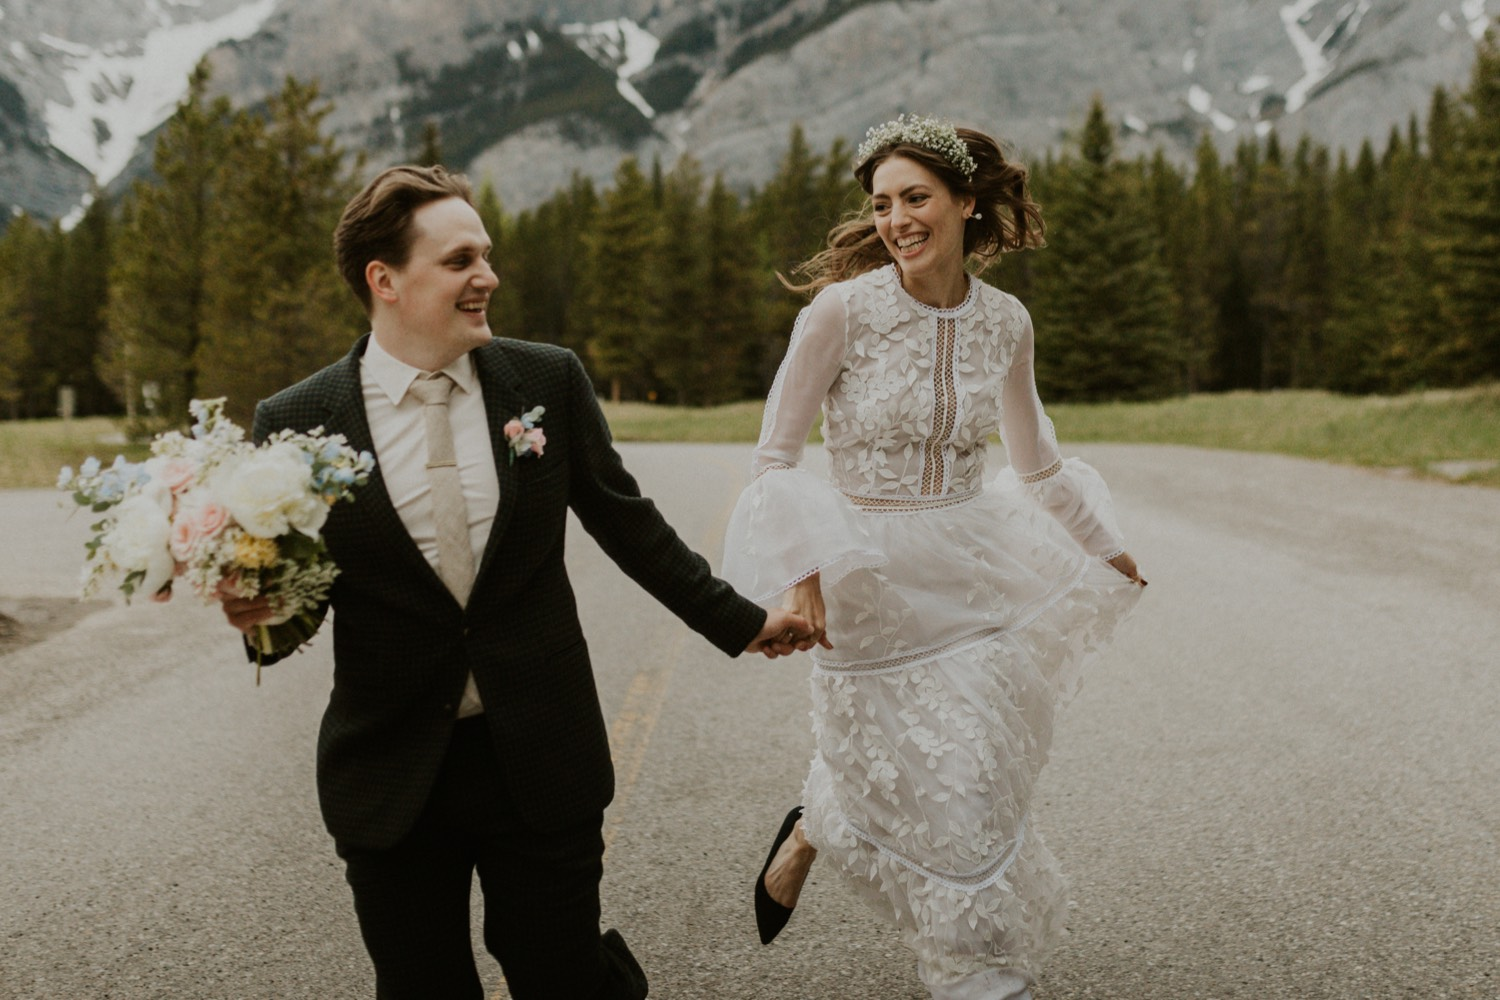 A Kananaskis Lake Elopement in the beautiful Canadian Rockies photo of bride and groom portraits